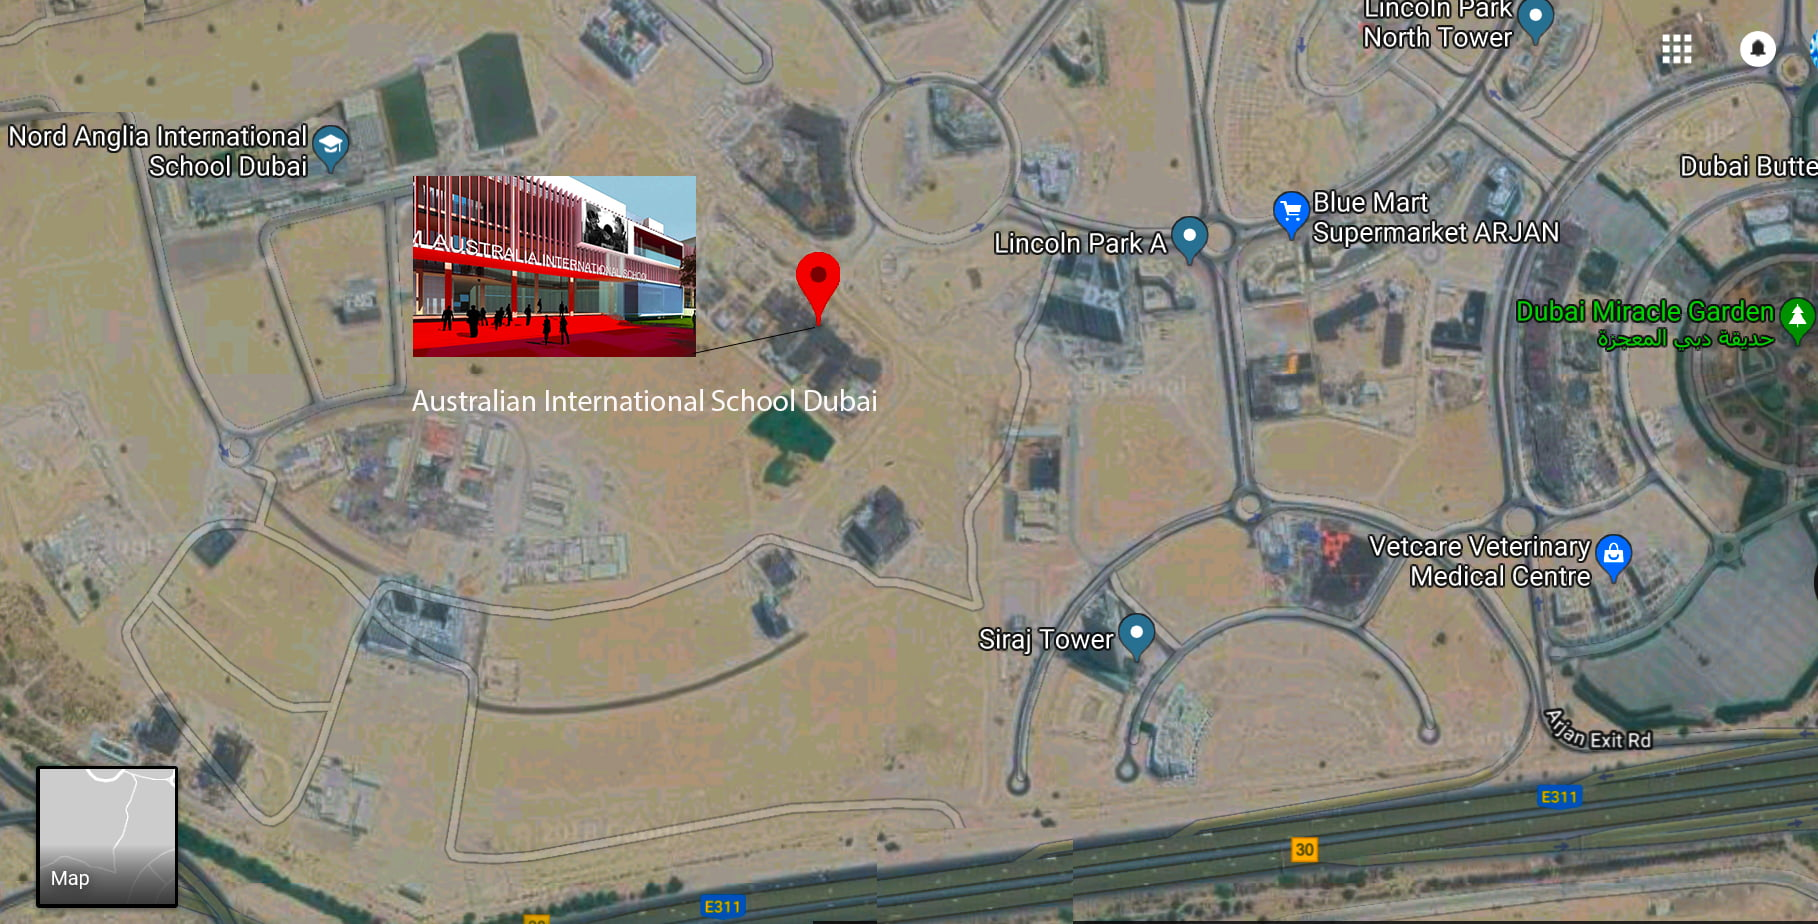 Satellite image showing the location of the site for building the new Australain International School in Al Barsha Dubai